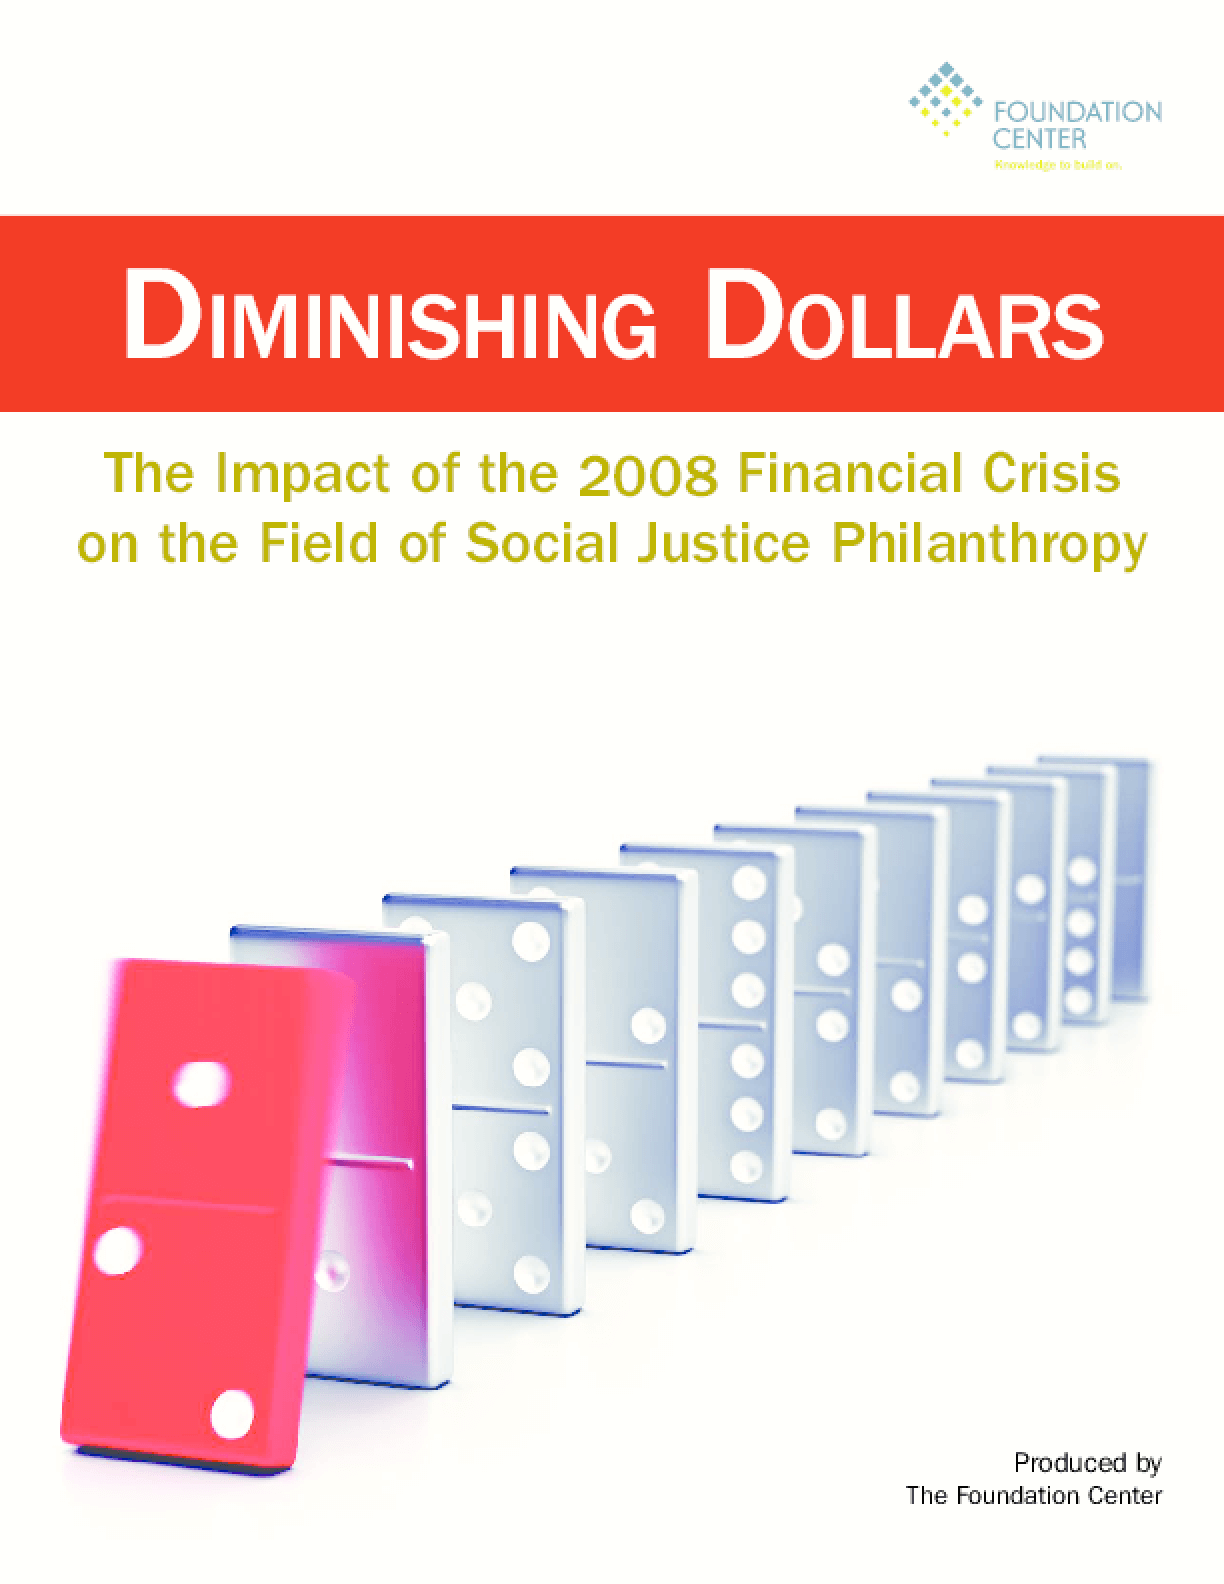 Diminishing Dollars: The Impact of the 2008 Financial Crisis on the Field of Social Justice Philanthropy